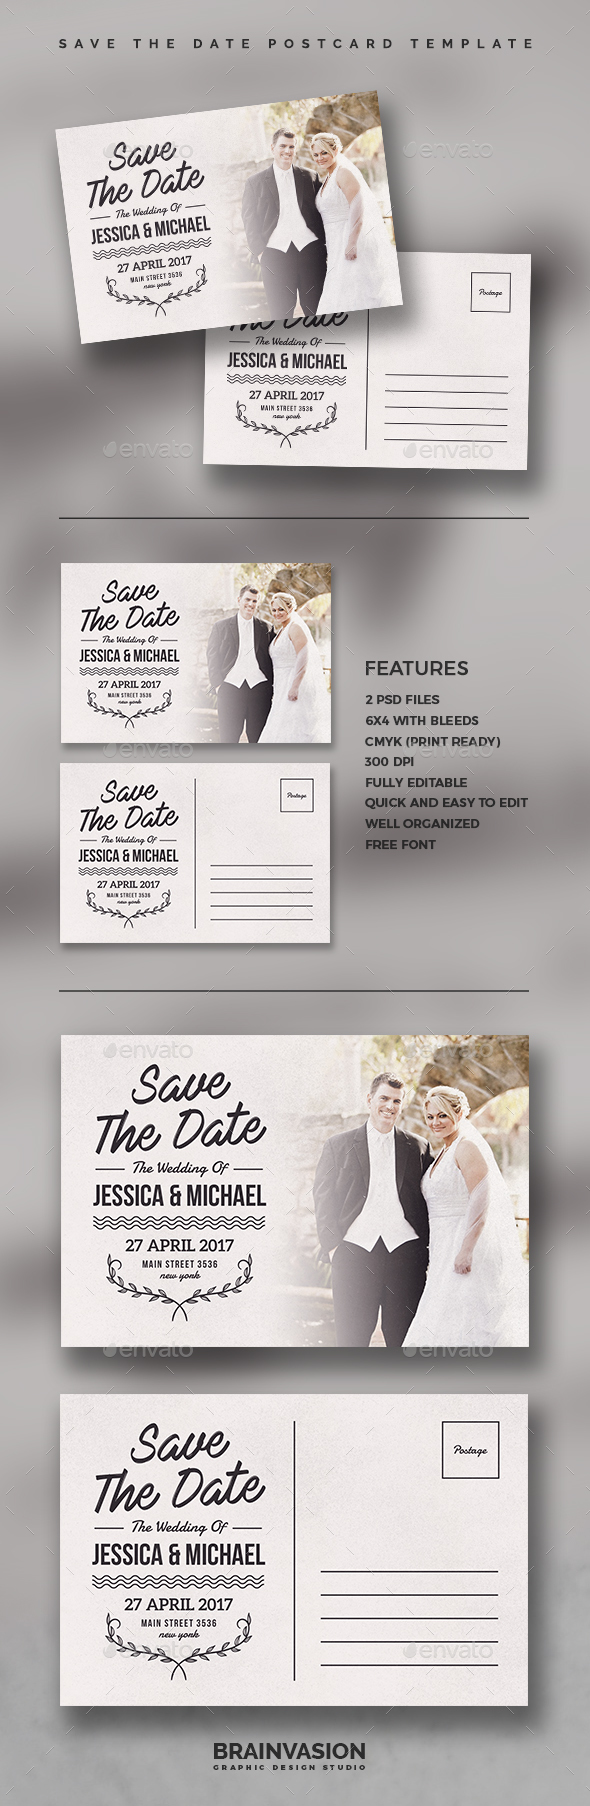 Save The Date Postcard Template - Weddings Cards & Invites